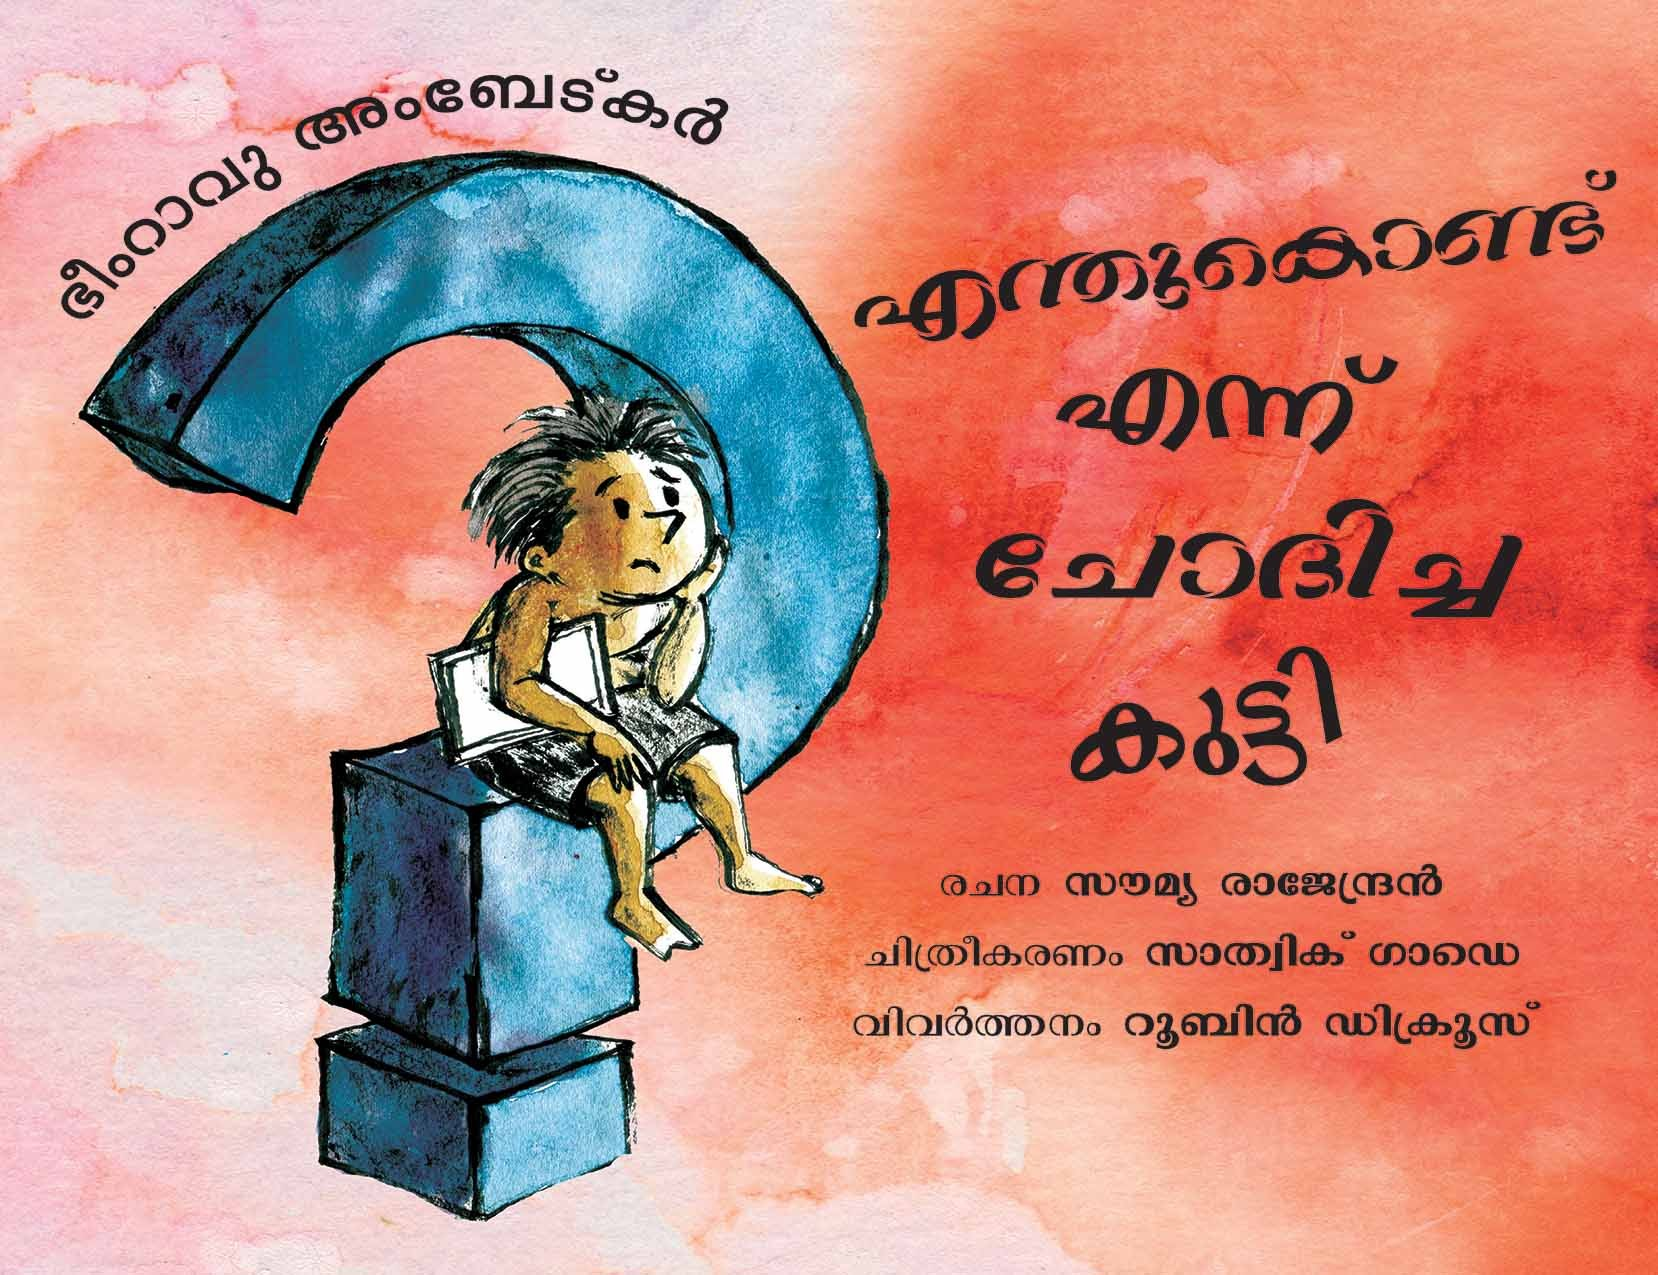 Bhimrao Ambedkar: The Boy Who Asked Why/Bhimrao Ambedkar: Endhukondu Ennu Chodichu Kutty (Malayalam)